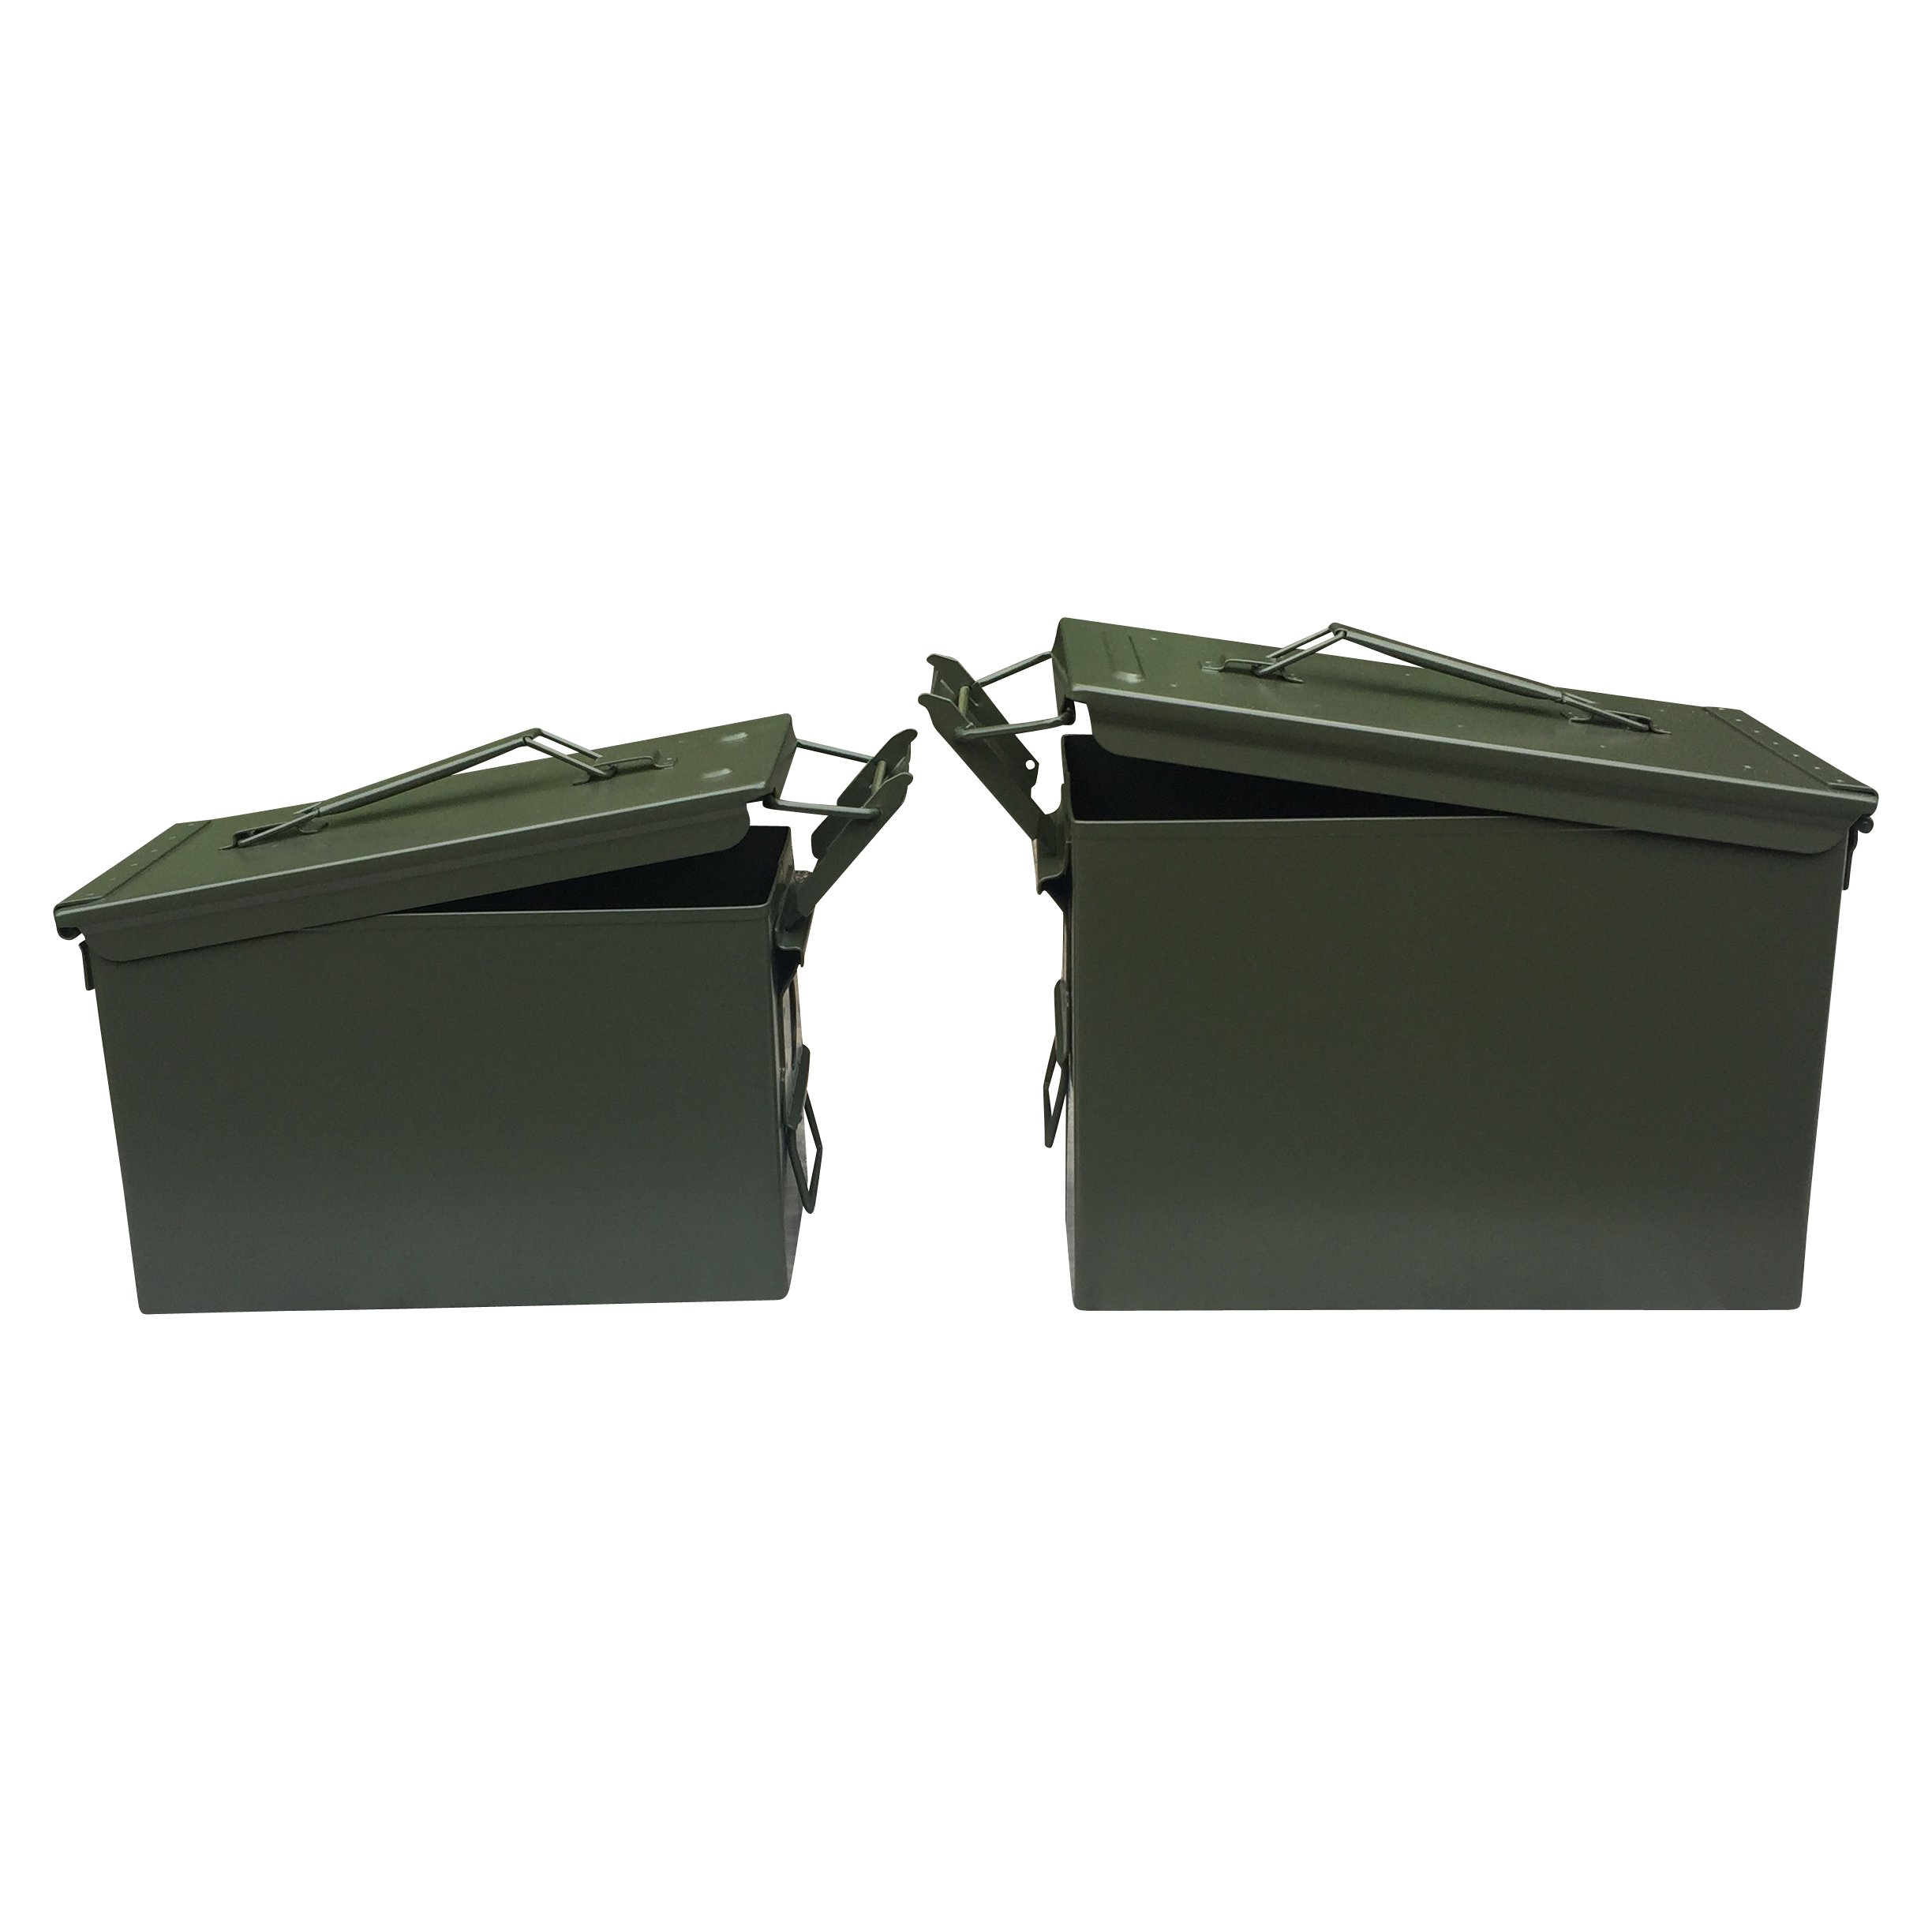 Ten Cans! Five Mil-Spec FAT 50 Cal PA108 Ammo Cans and Five Mil-Spec 50 Cal M2A1 Ammo Cans. BRAND NEW by Ammo Can Man